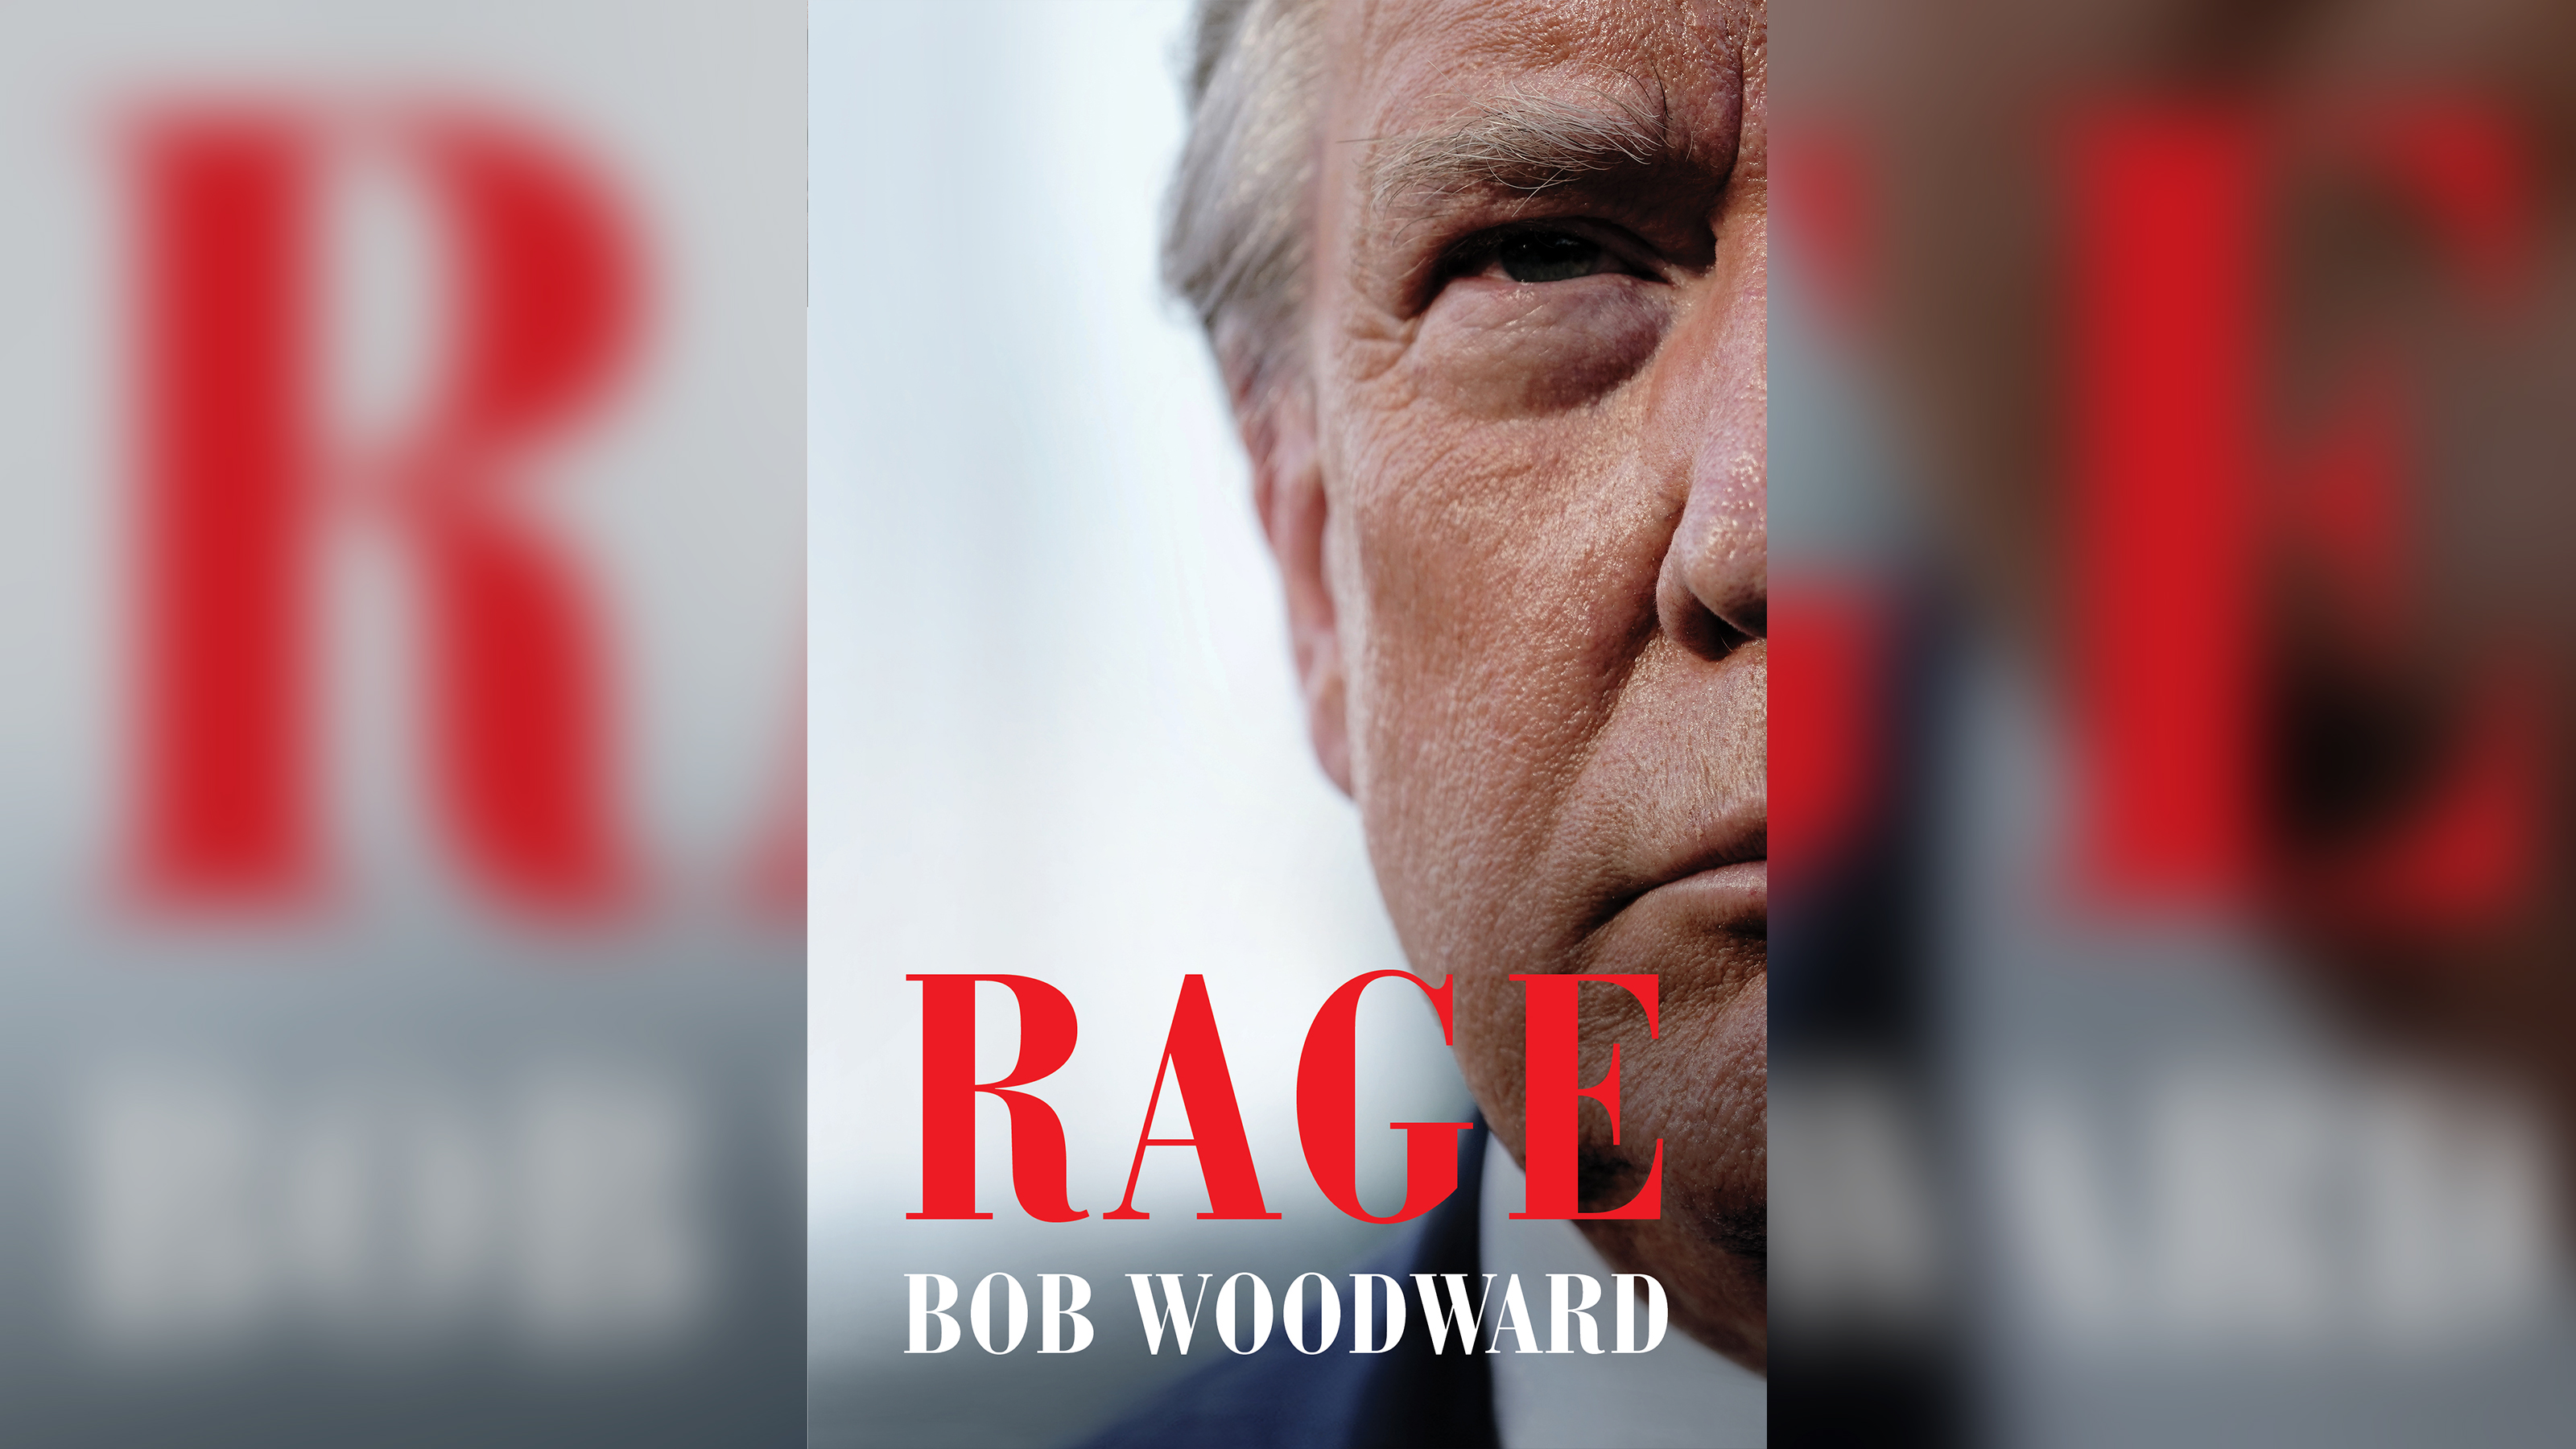 CNN Exclusive: Details, title and cover revealed for Bob Woodward's upcoming book on Trump